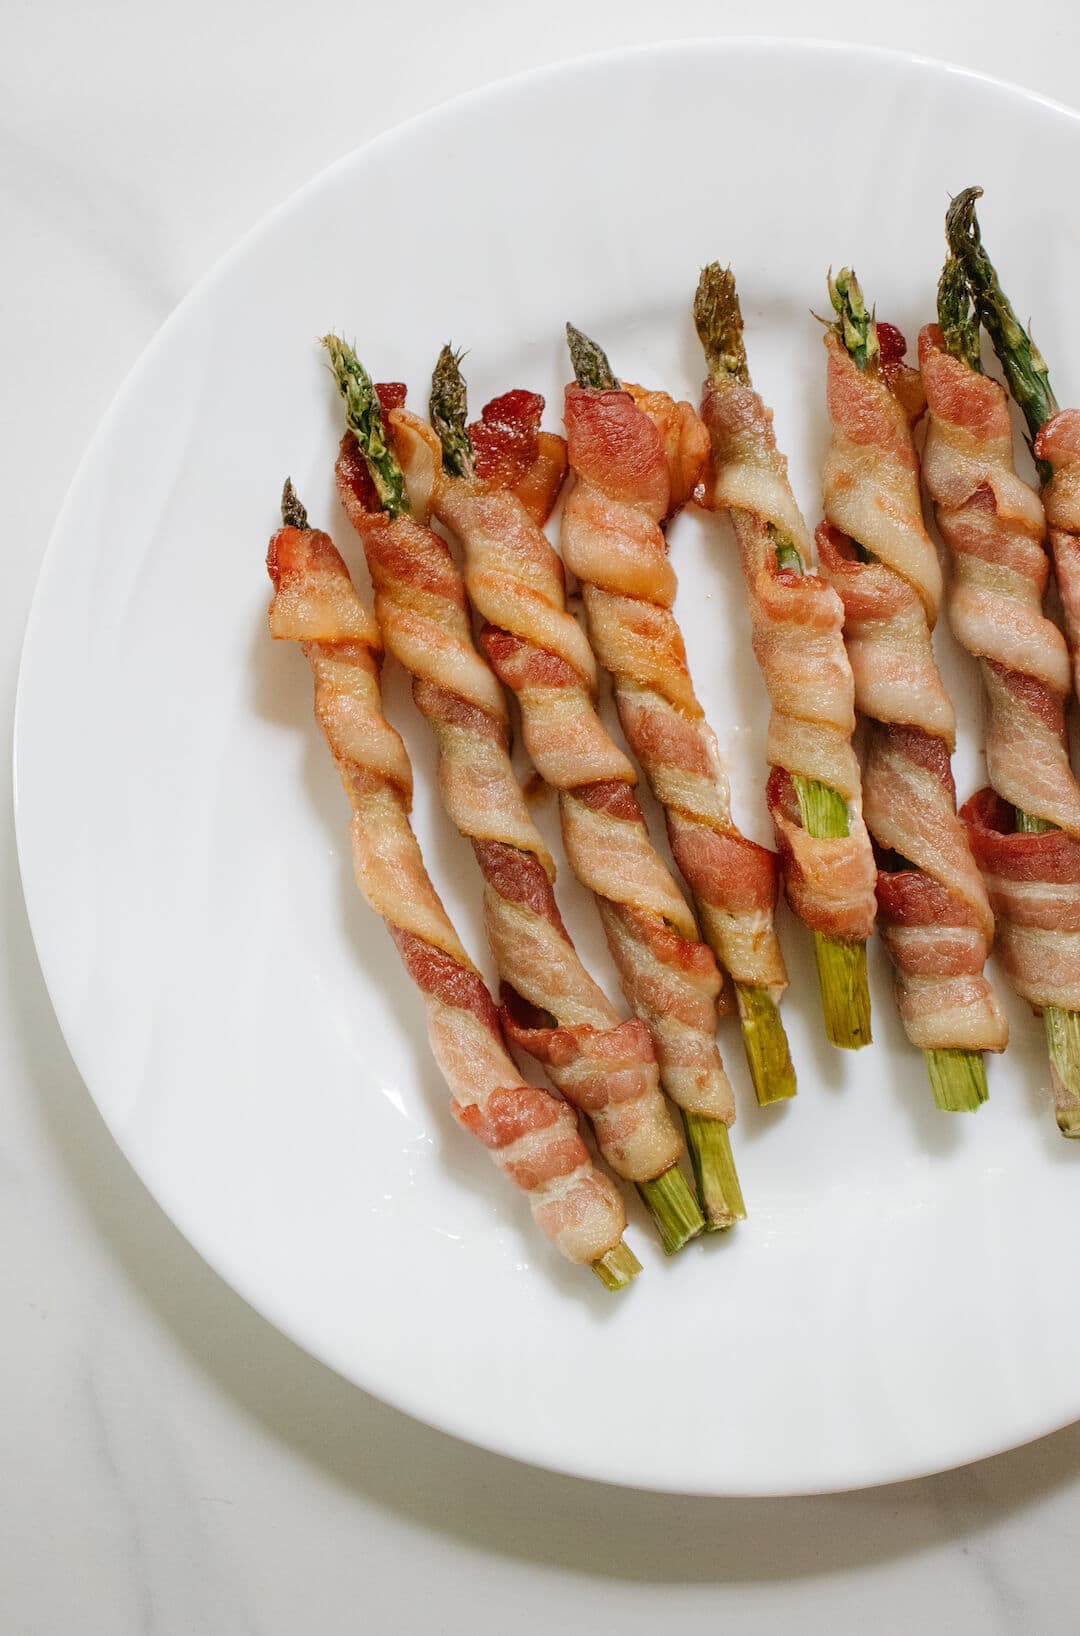 Bacon Wrapped Asparagus Recipe in the Oven